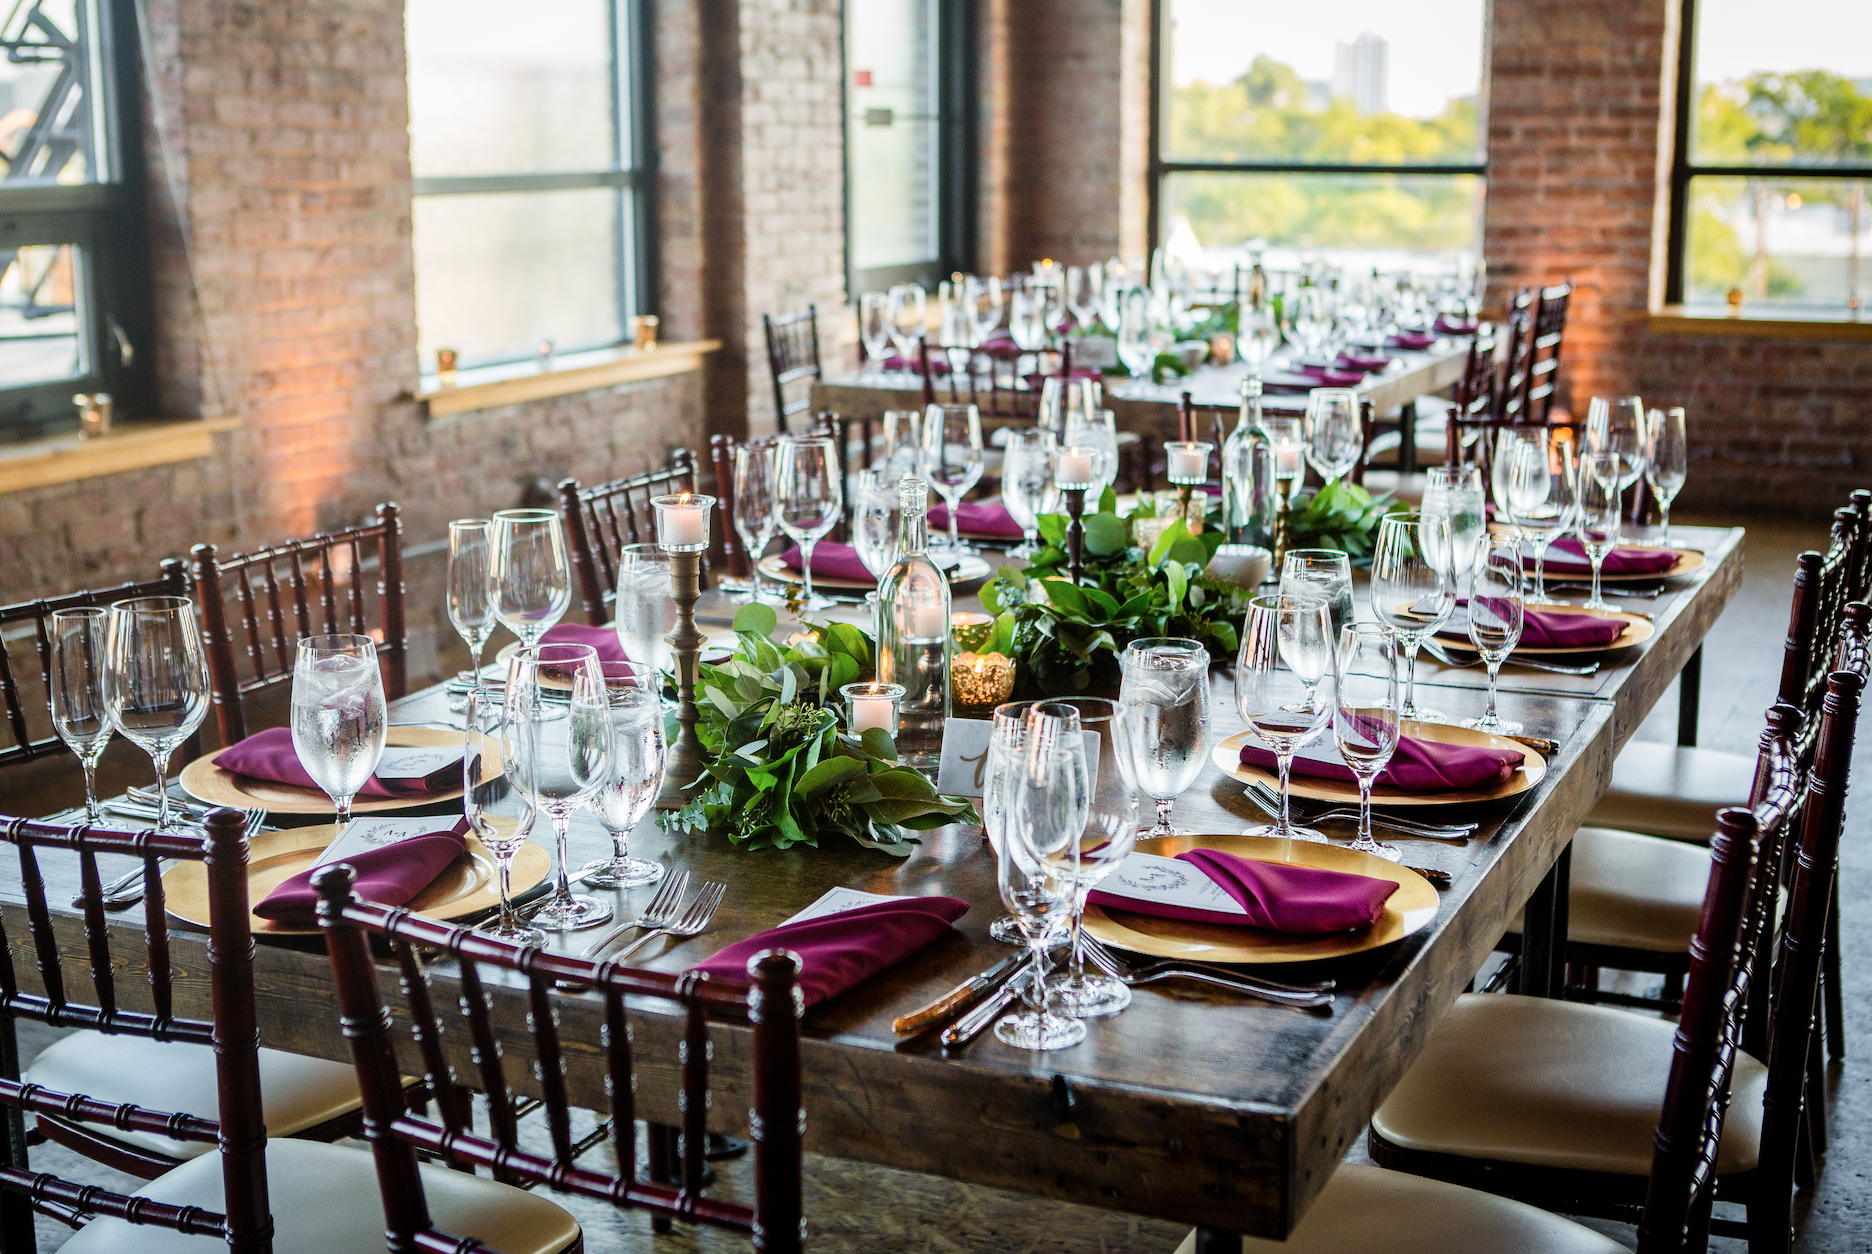 The Burgundy napkins add a ton of color here.